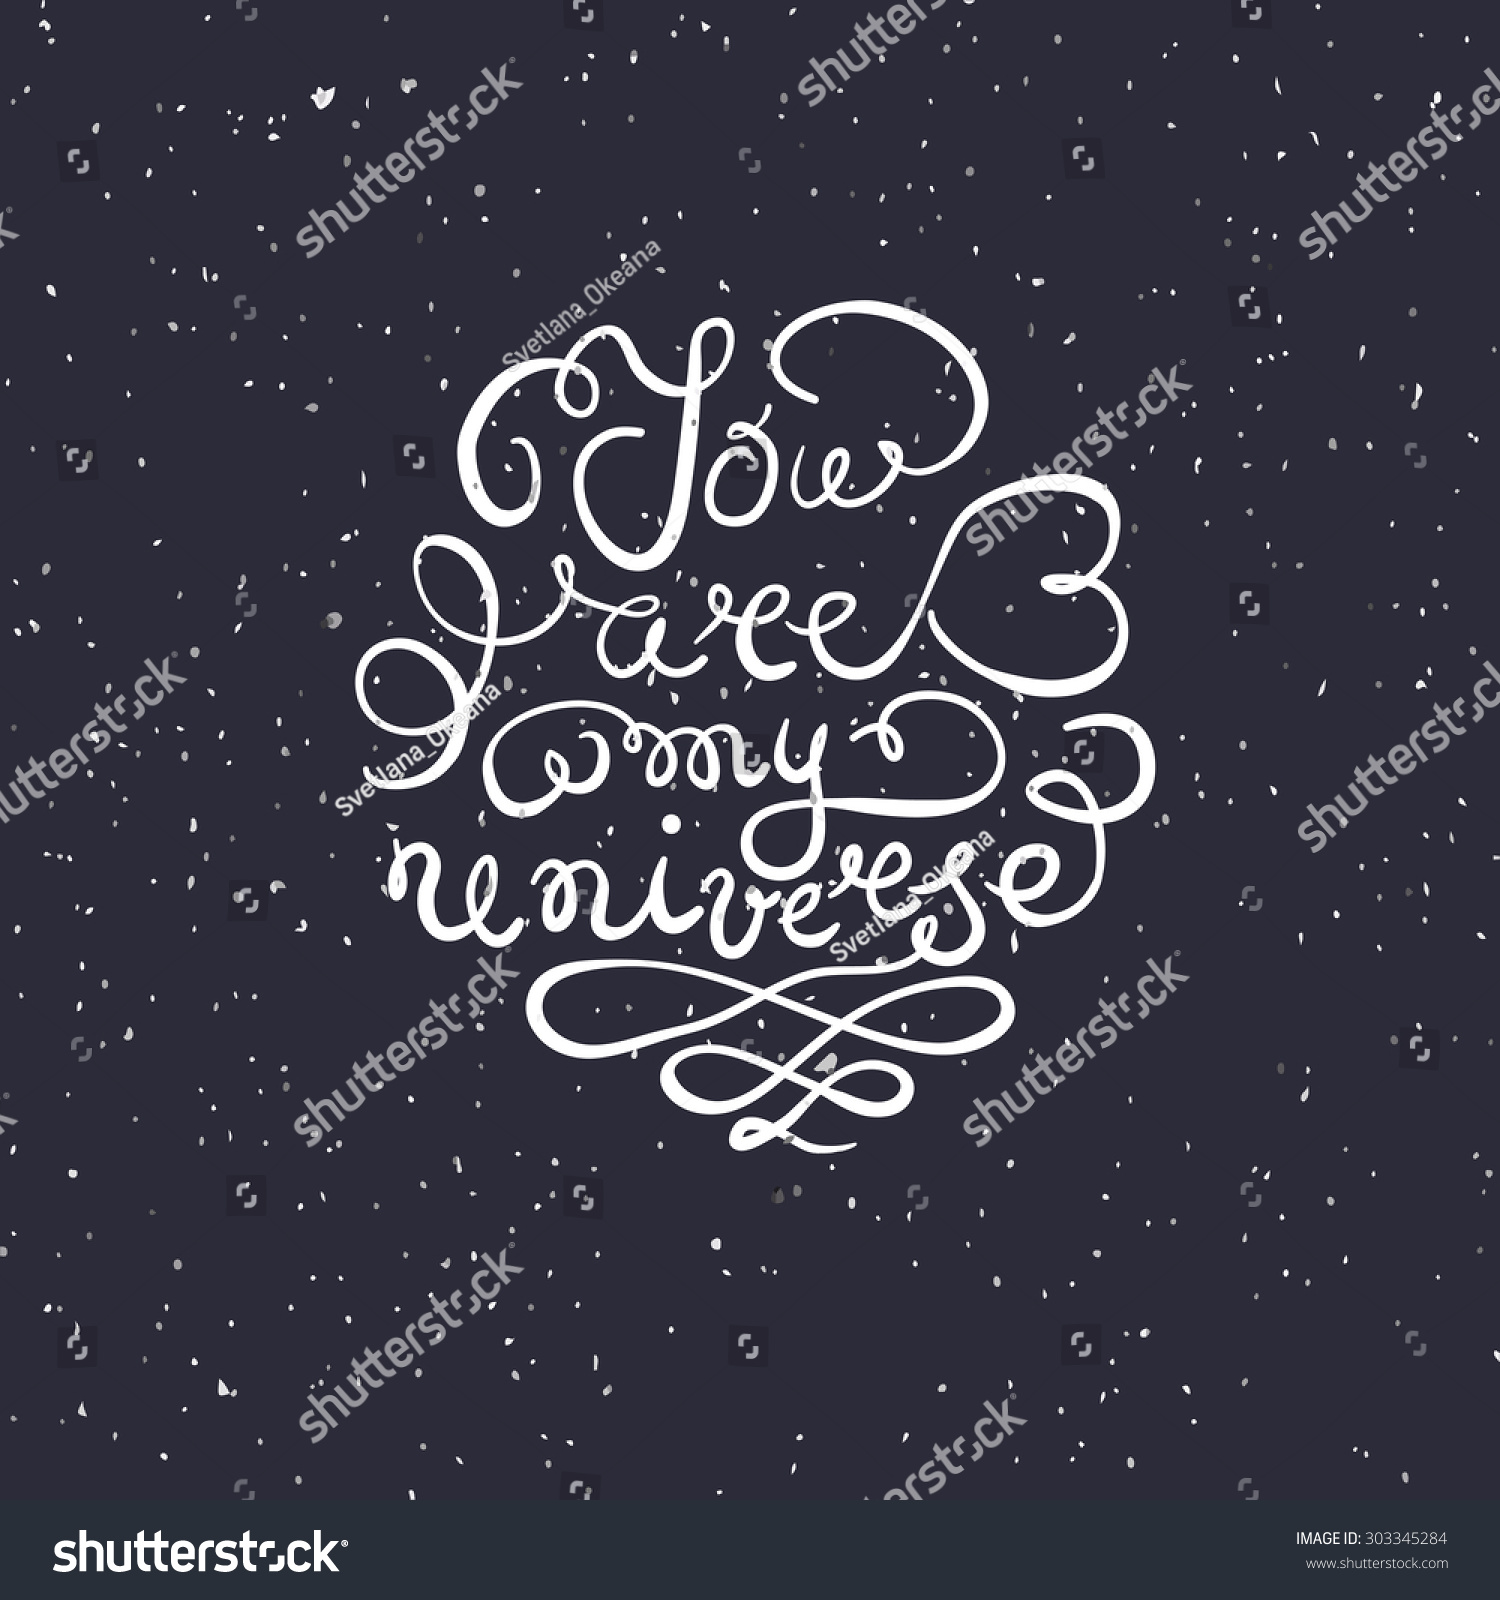 Background Hand Drawn Typography Poster Romantic Stock Vector (2018 ...